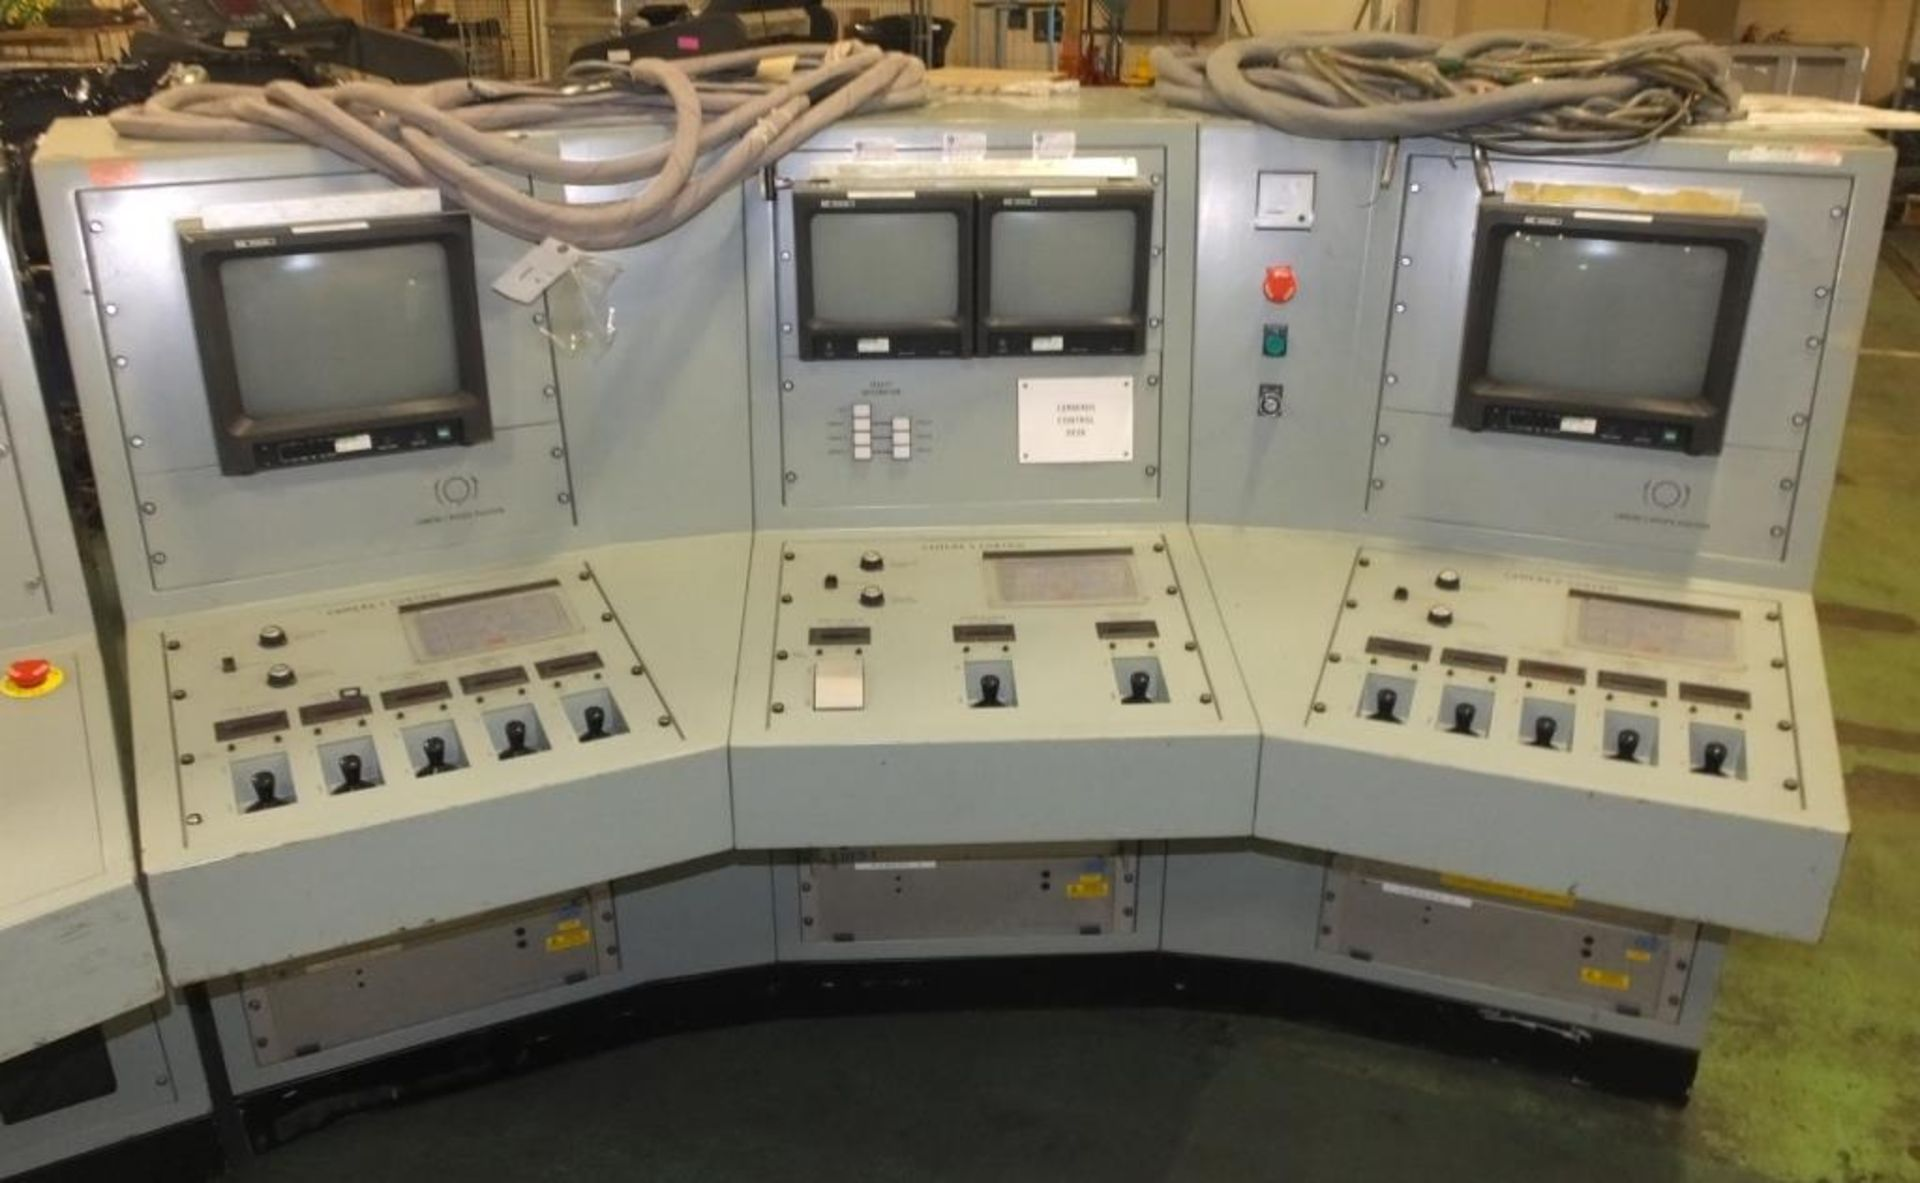 Ex Nuclear Plant Reactor Control / Monitoring System - Image 20 of 25